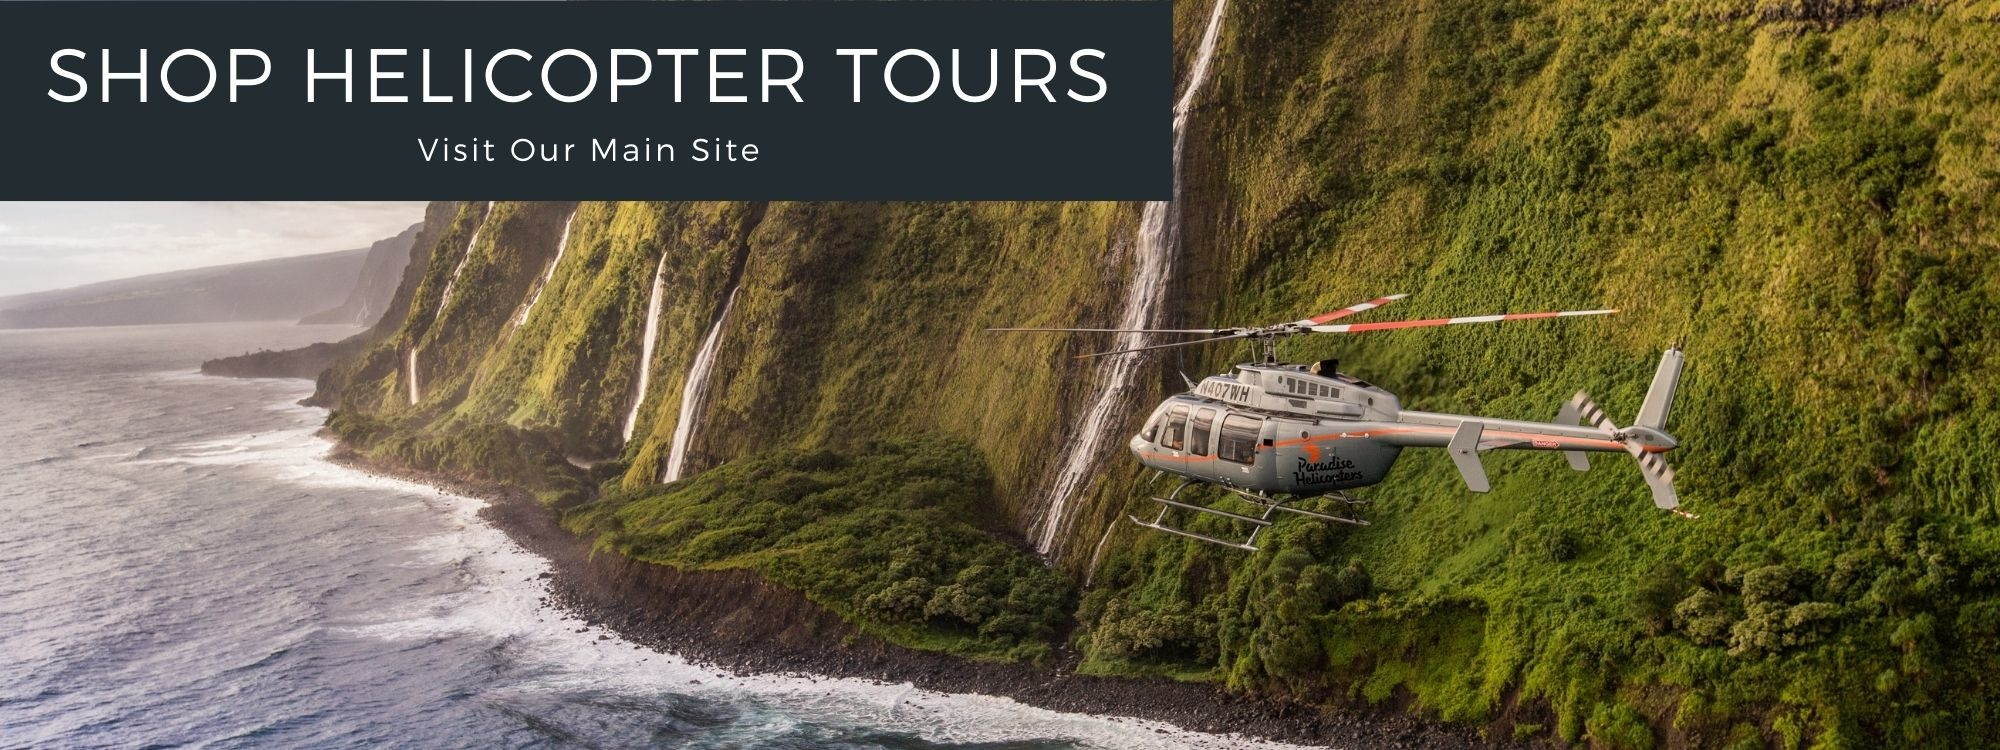 Shop Helicopter Tours